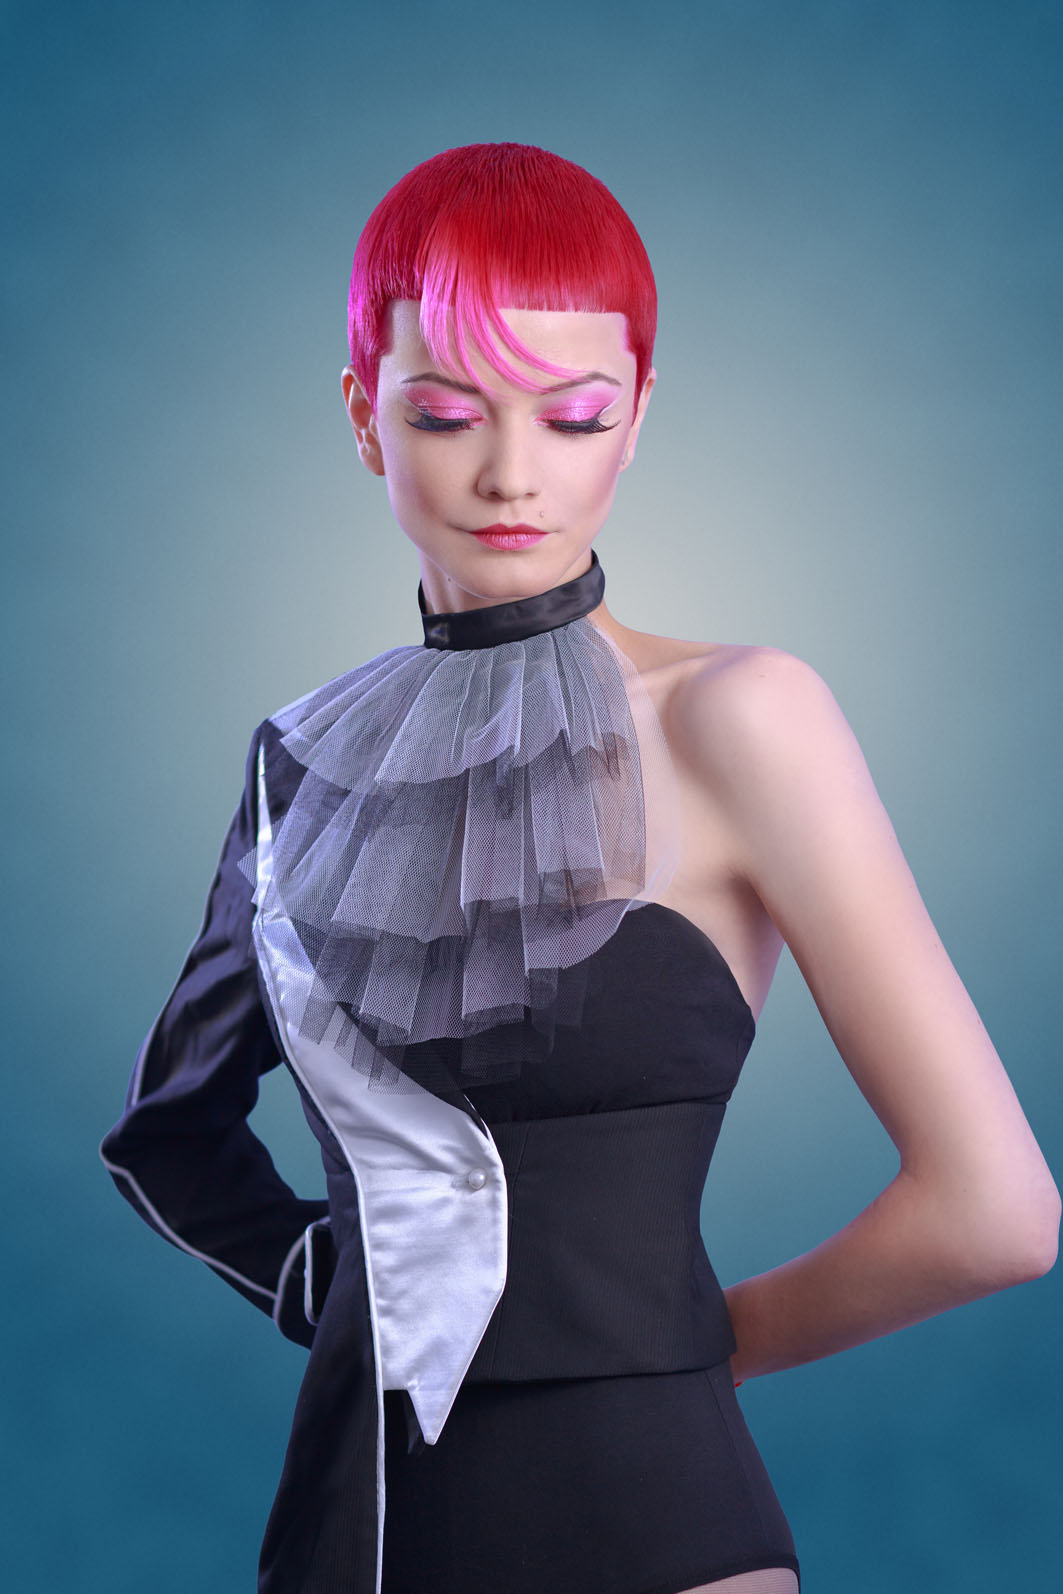 Cosmobeauty_2015_hair_competition_01